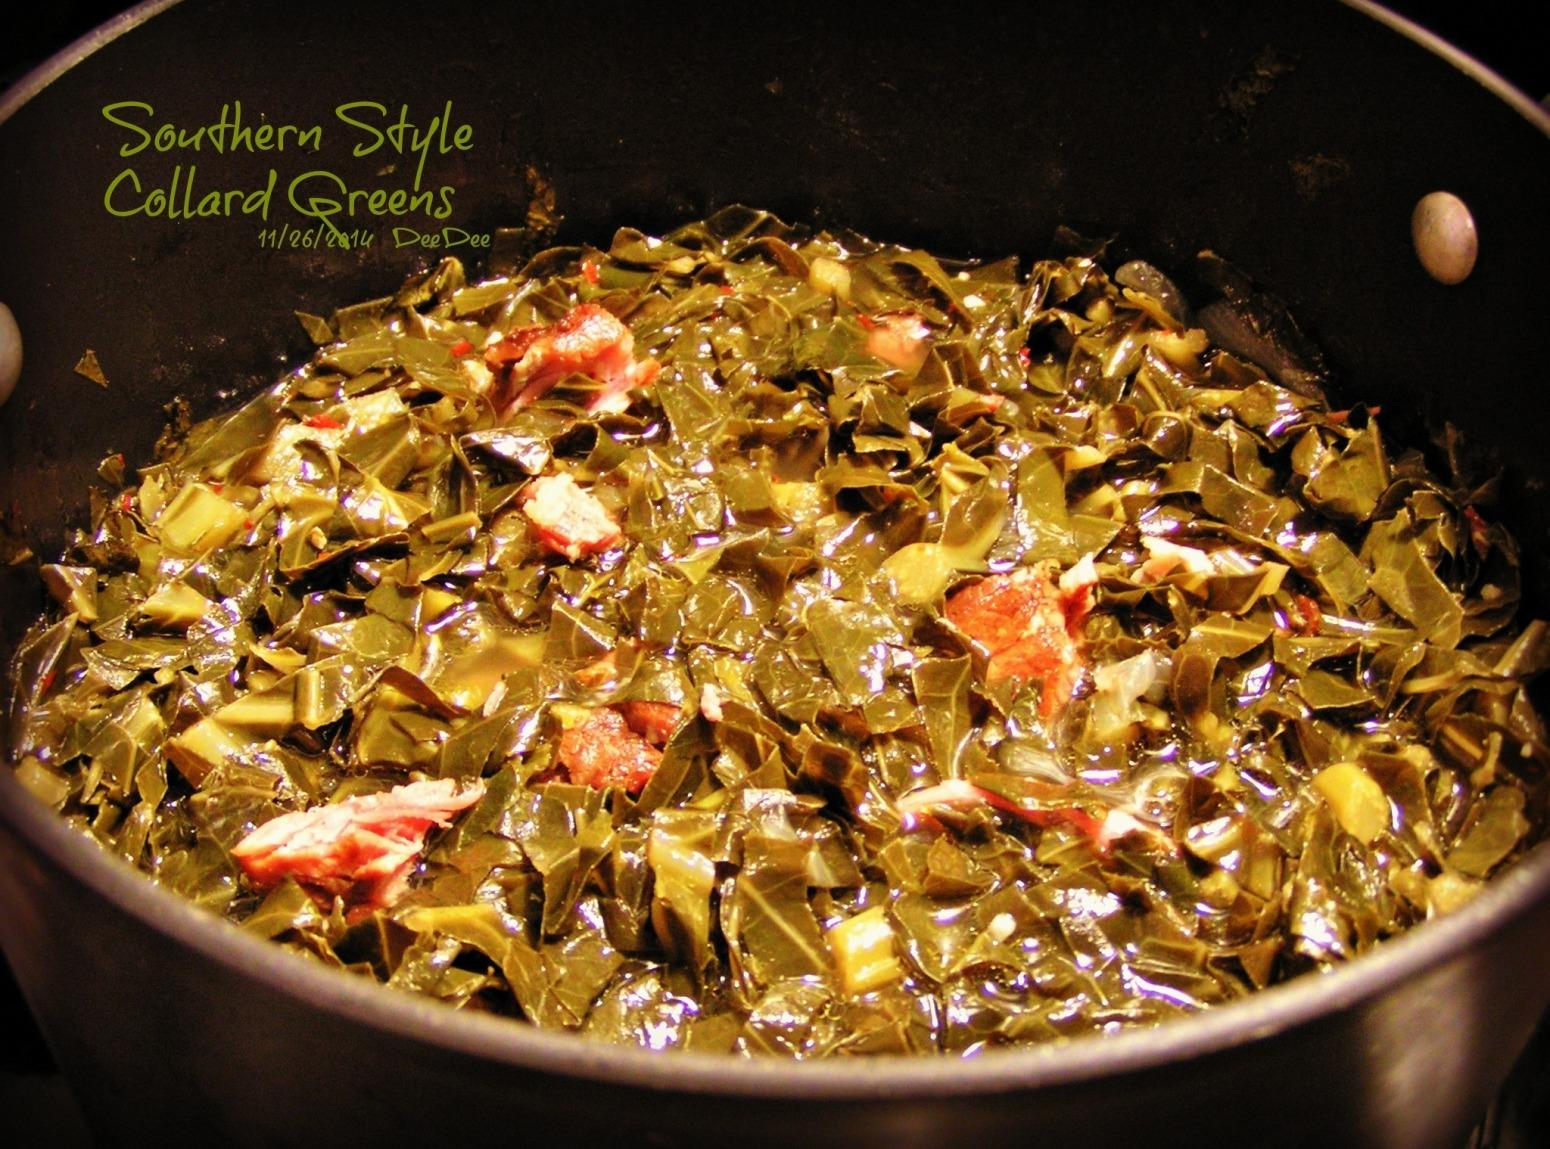 Southern Style Collard Greens Recipe | Just A Pinch Recipes